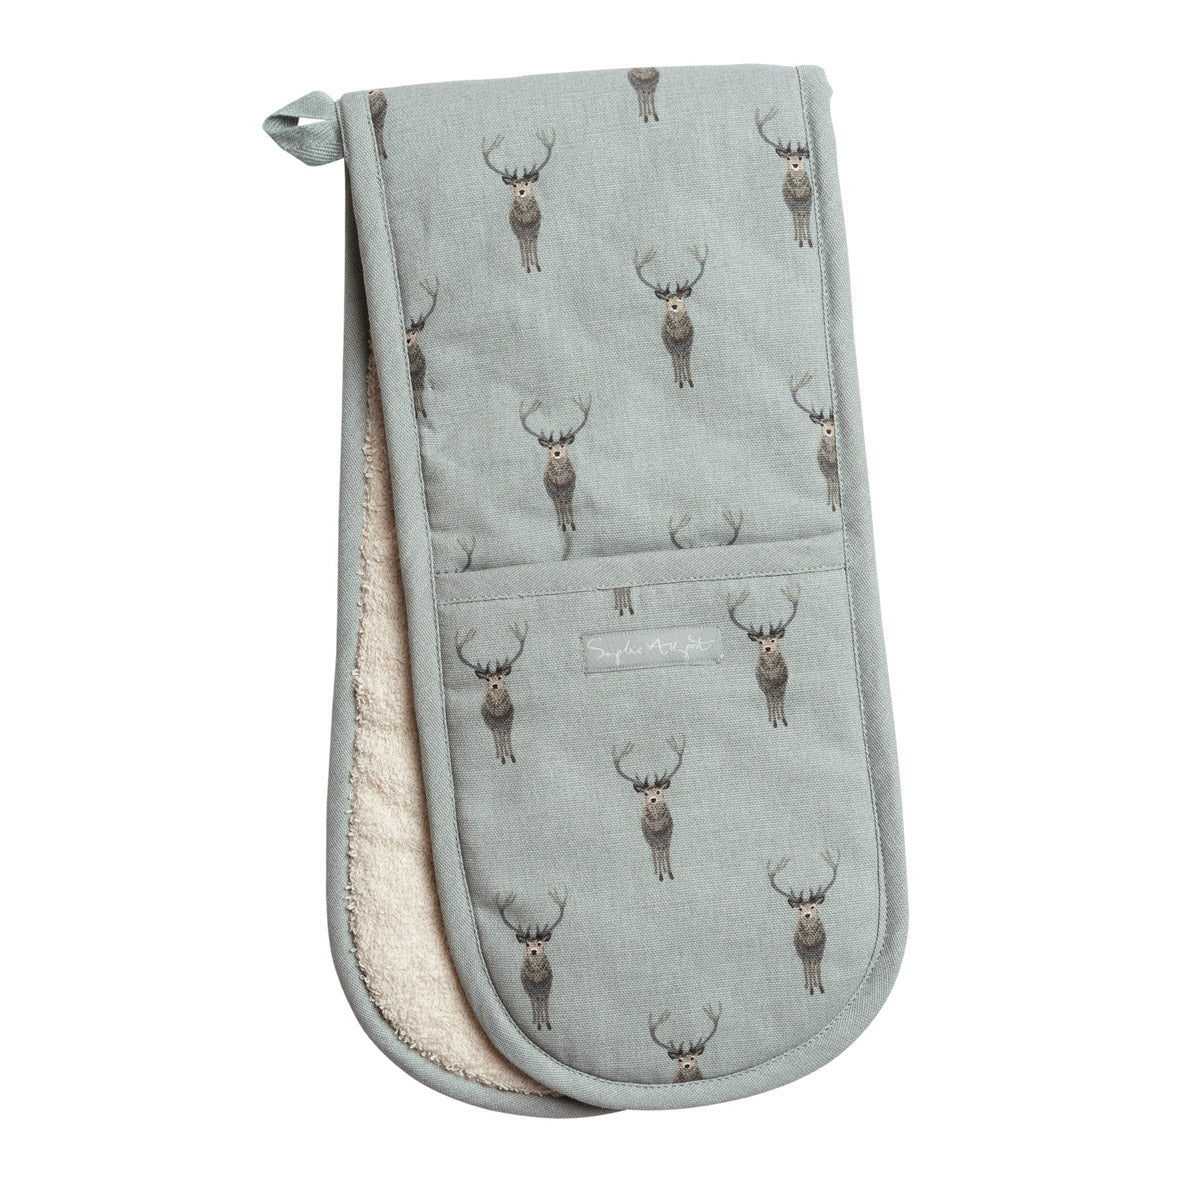 Highland Stag Double Oven Glove